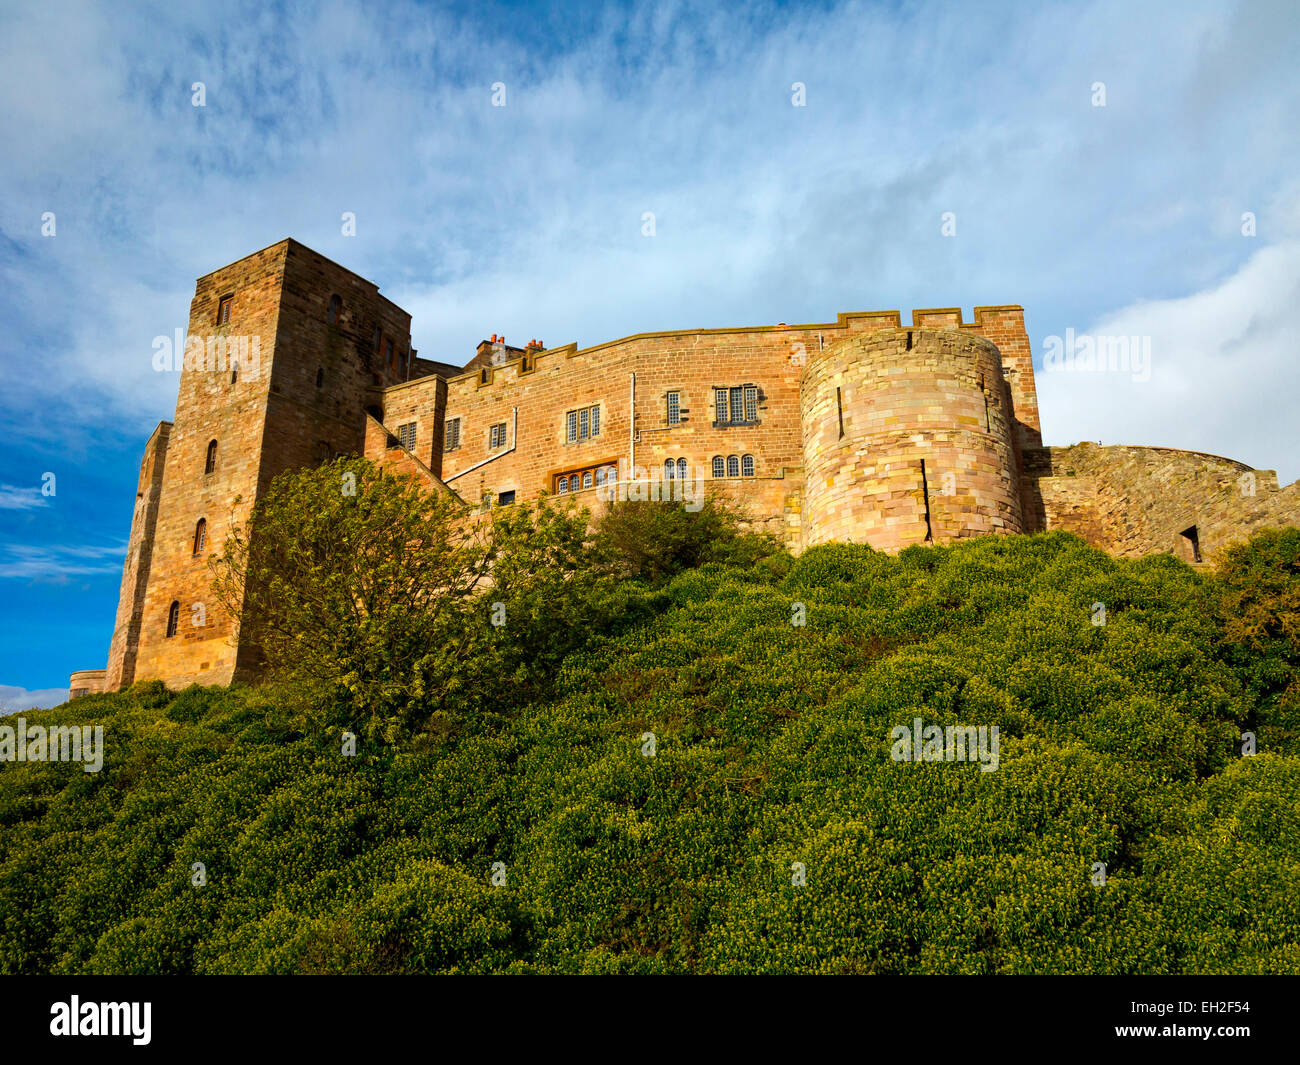 View from below of Bamburgh Castle in Northumberland England UK home of the Armstrong family - Stock Image